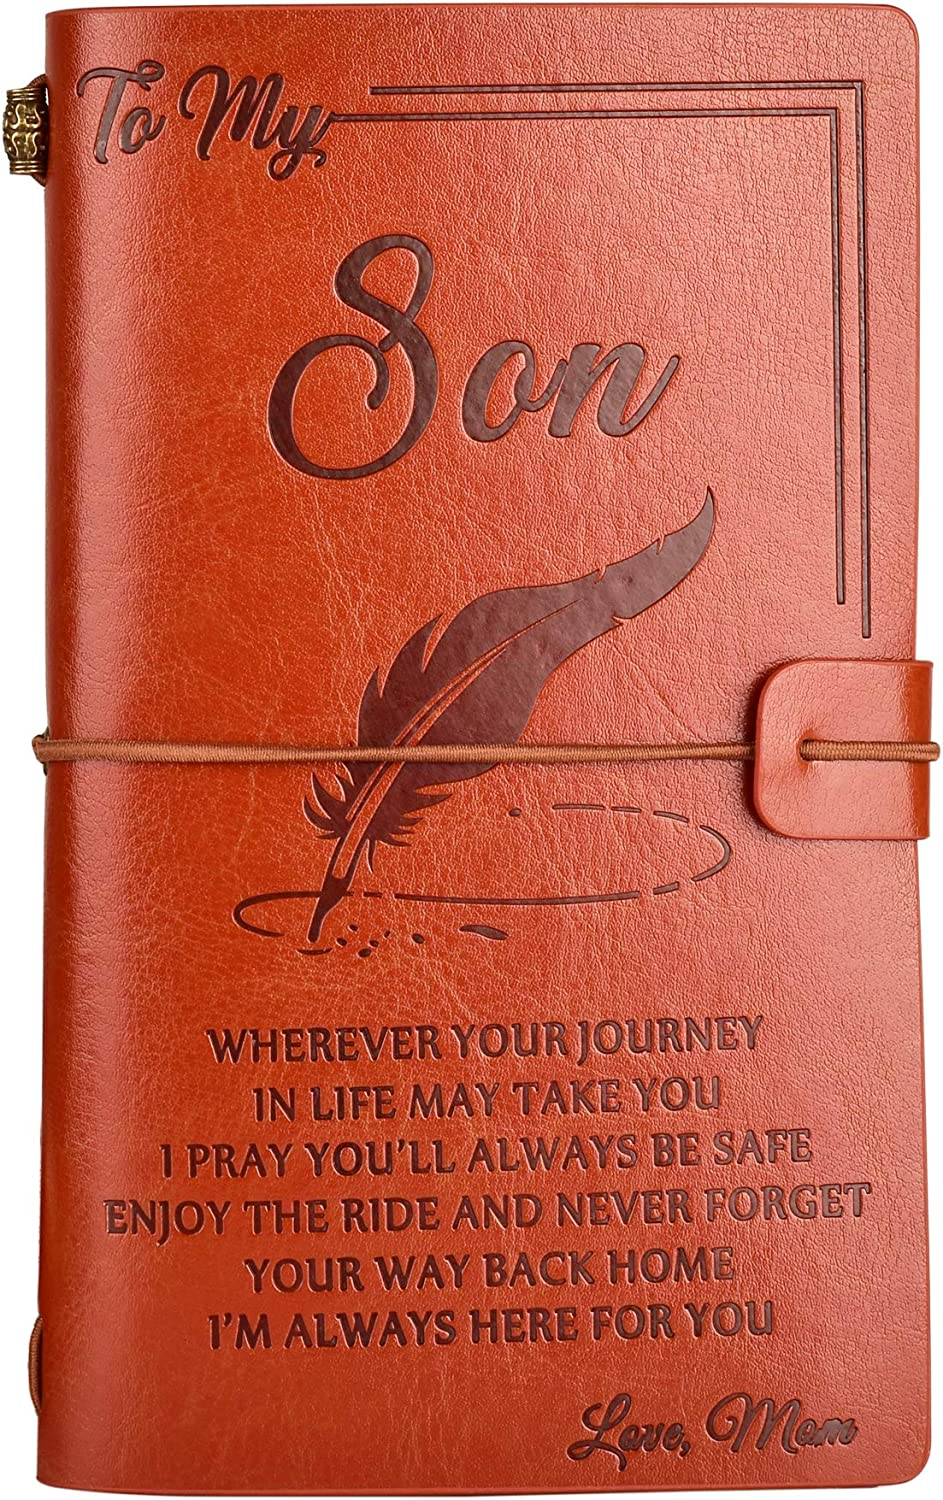 To My Son Leather Journal from Mom - Enjoy the Ride and Never Forget the Way Home Notebook - 136 Page Travel Diary Journal Sketch Book Graduation Back to School Gift for Boys